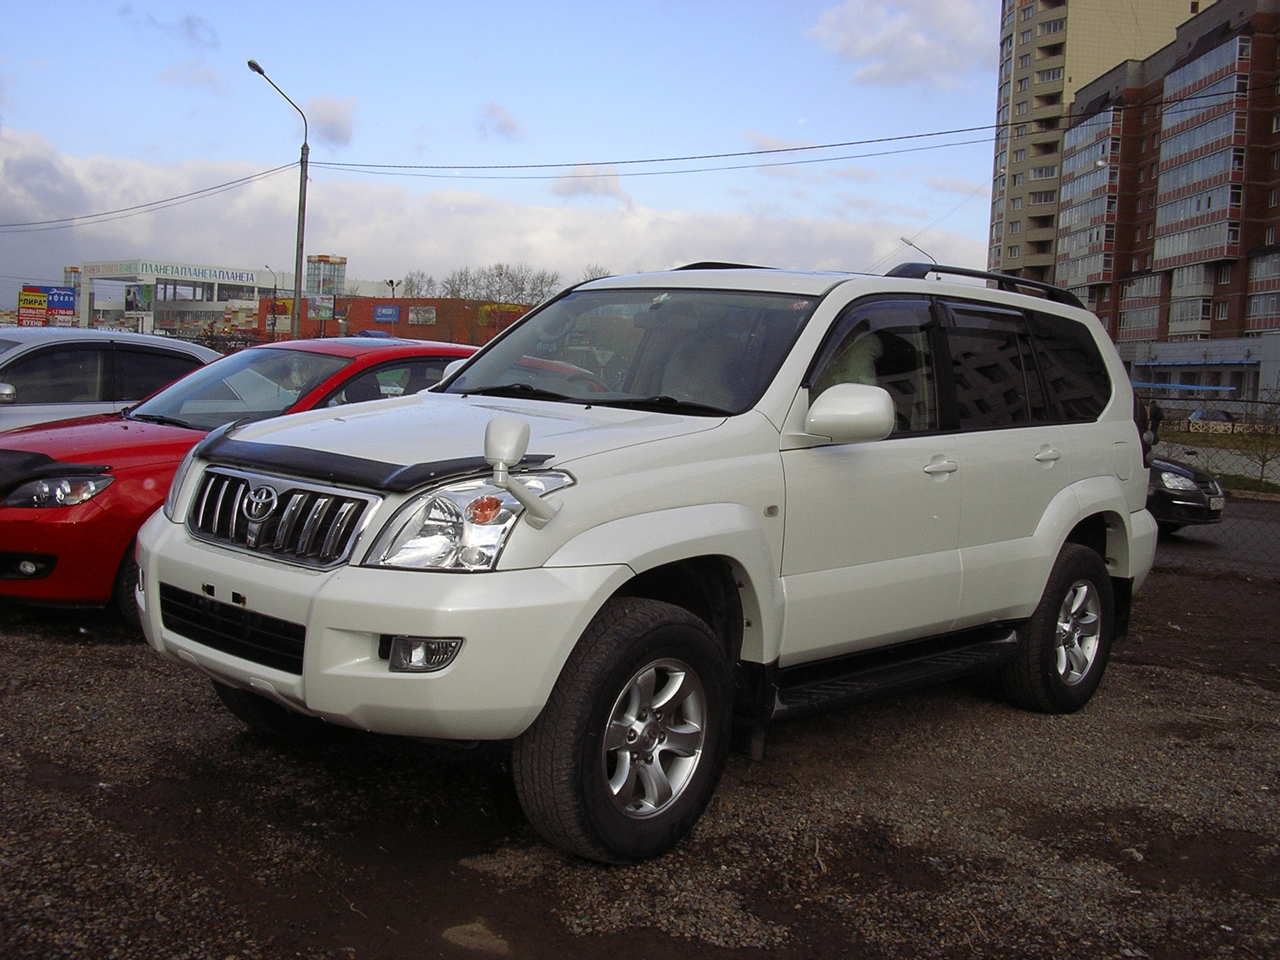 2004 toyota land cruiser prado for sale 2700cc gasoline. Black Bedroom Furniture Sets. Home Design Ideas